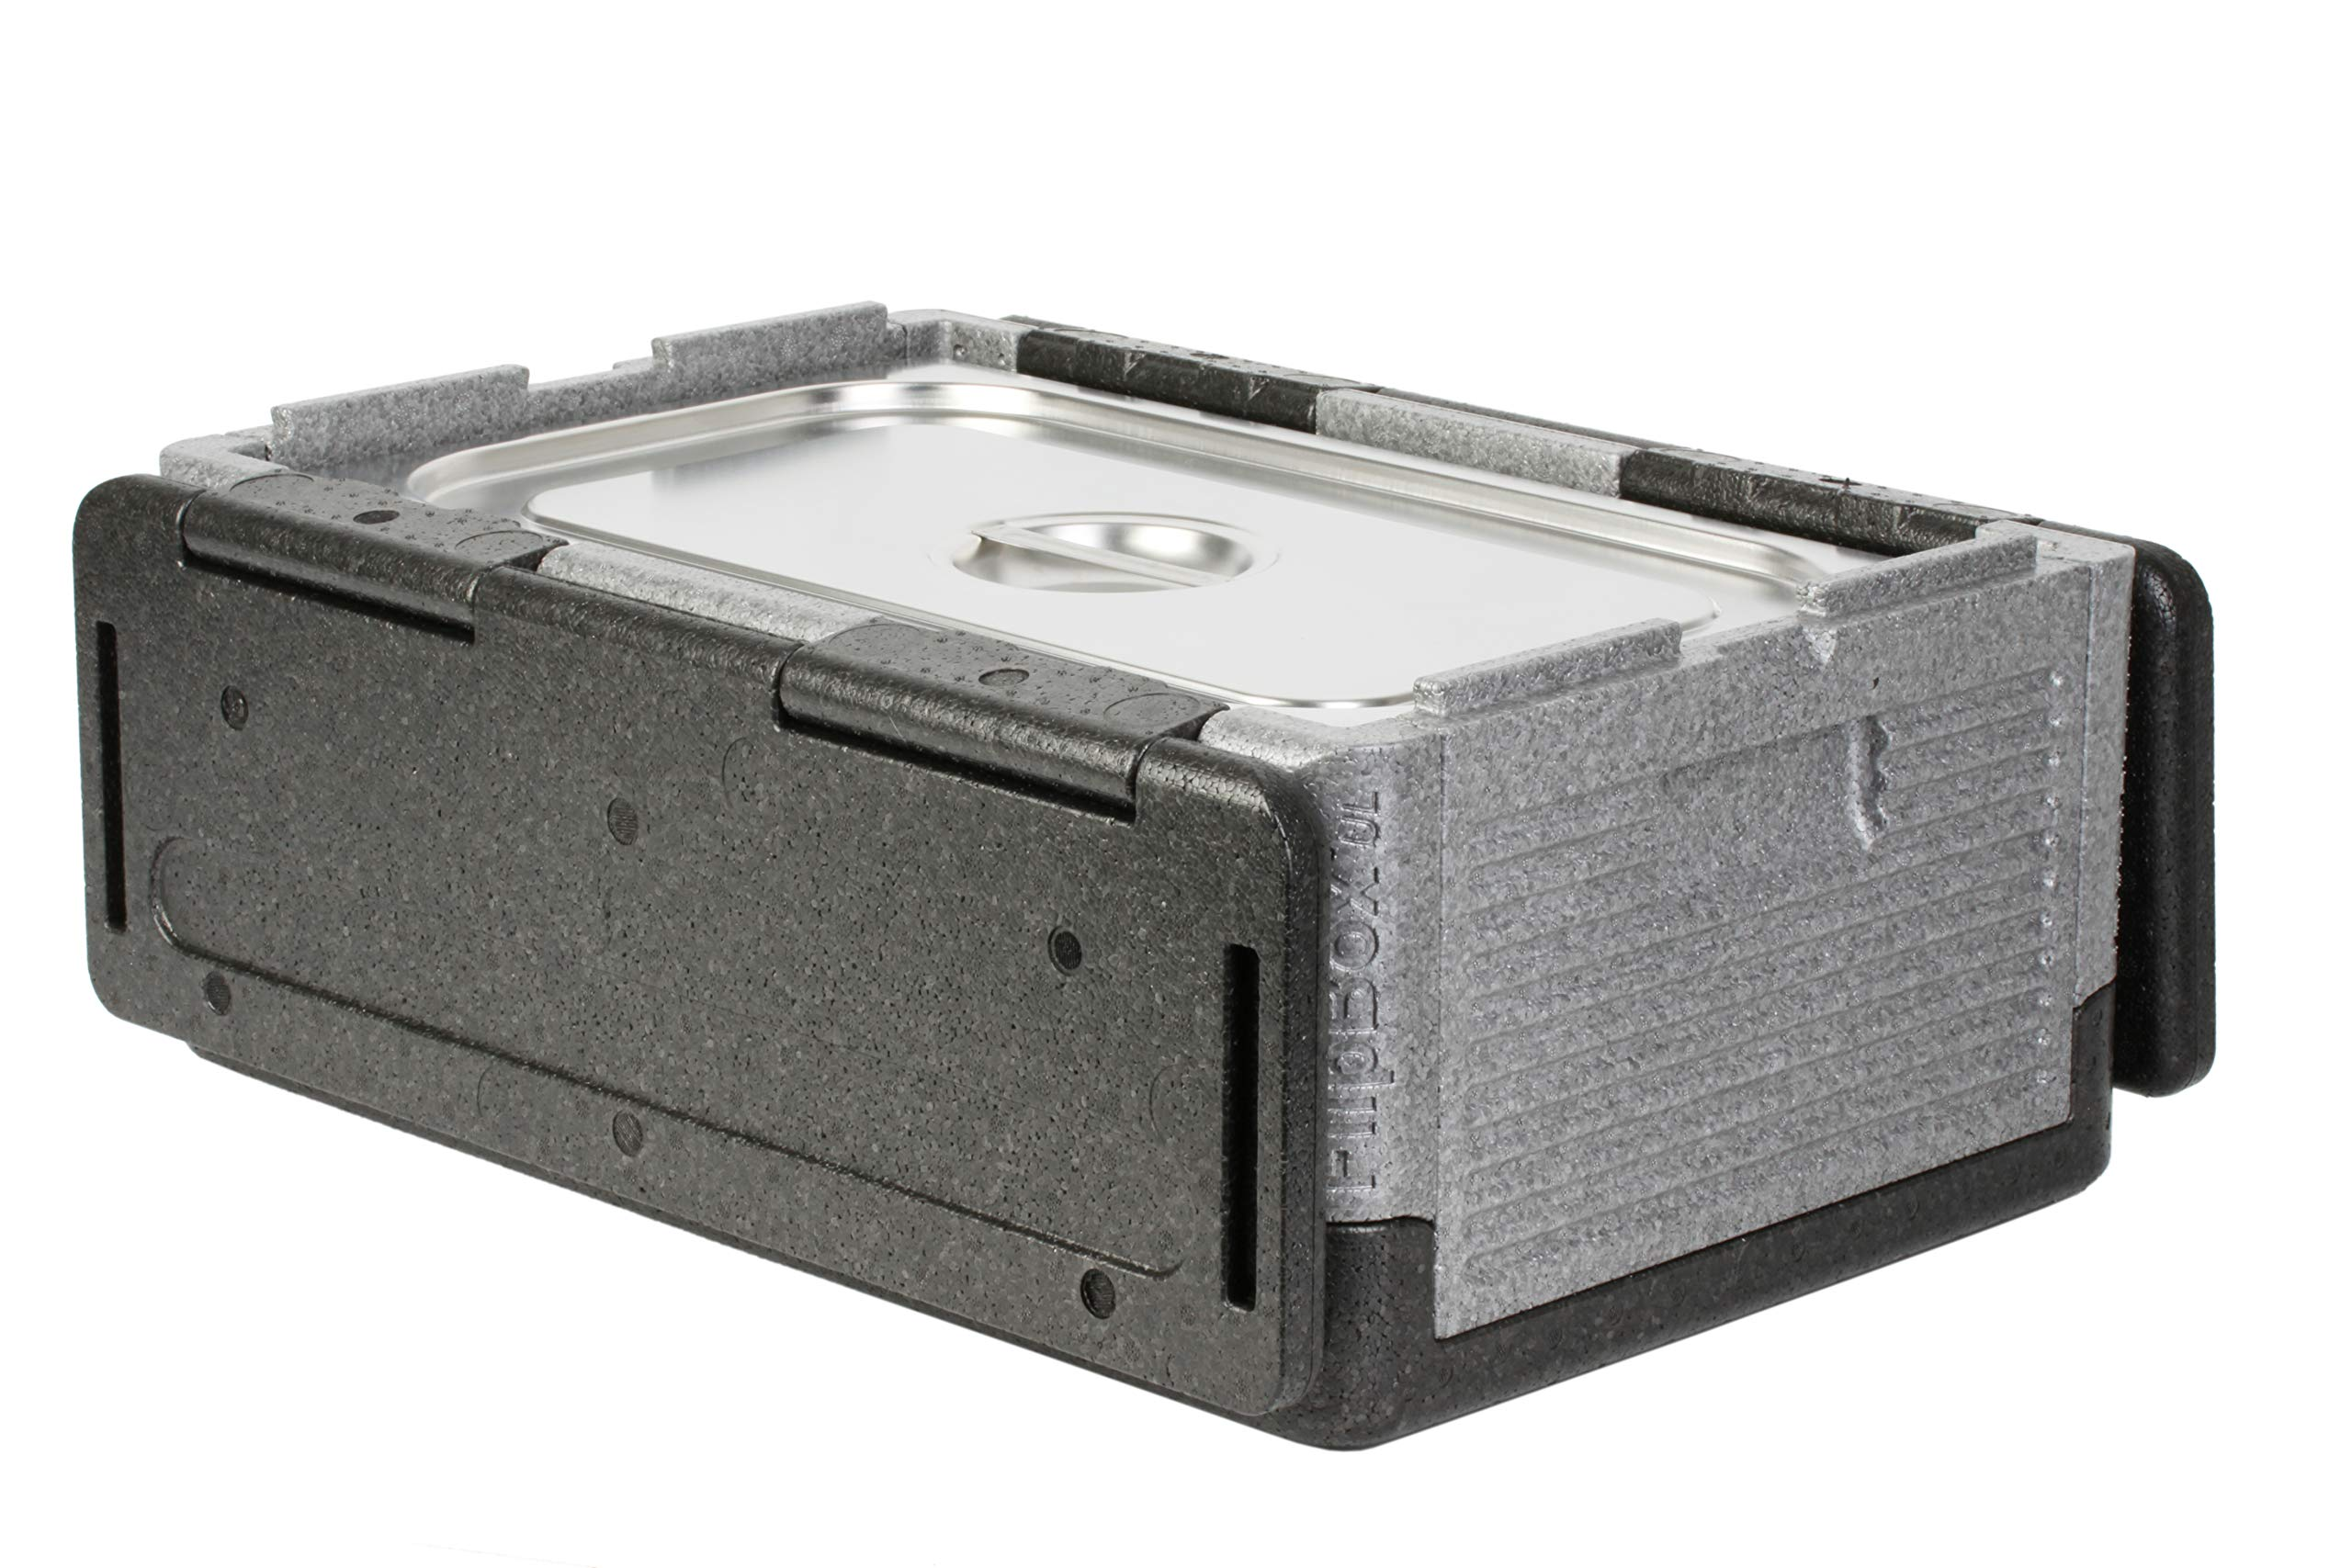 Flip-Box XL Insulation Box - Fits 60 Cans, Collapsible Iceless Cooler Perfect for Tailgating, Picnics, and Beach Trips